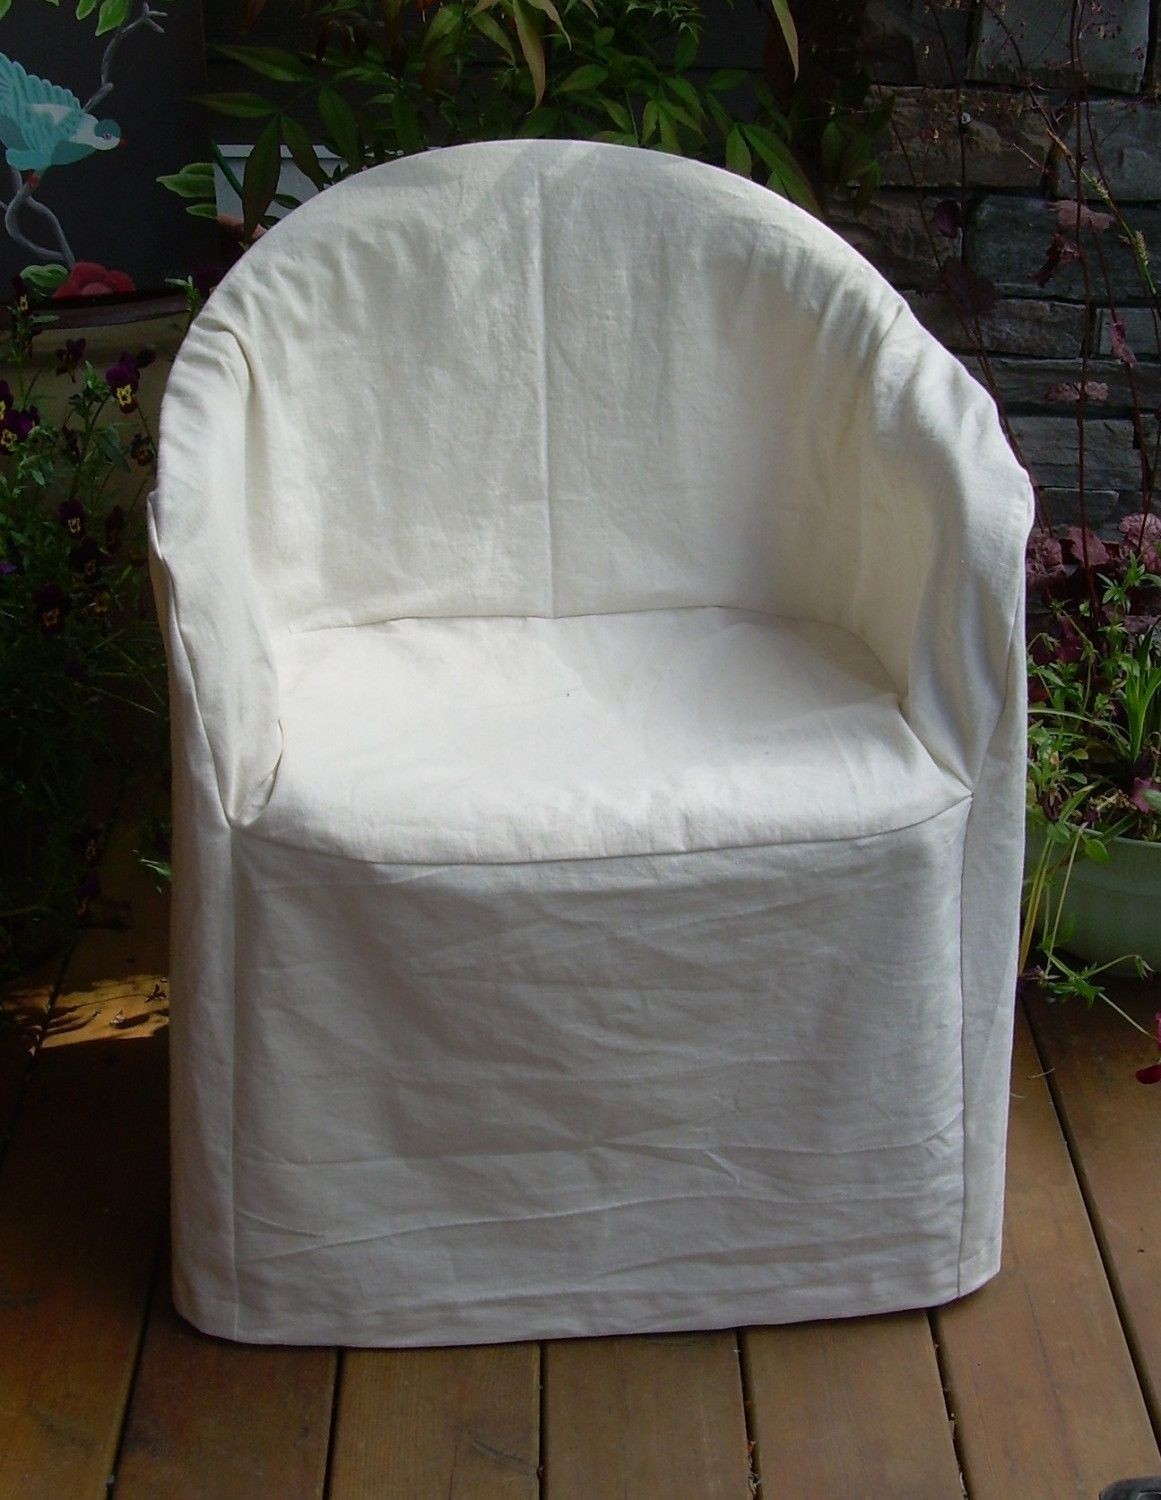 plastic patio furniture covers ideas on foter rh foter com  plastic covers for outdoor furniture